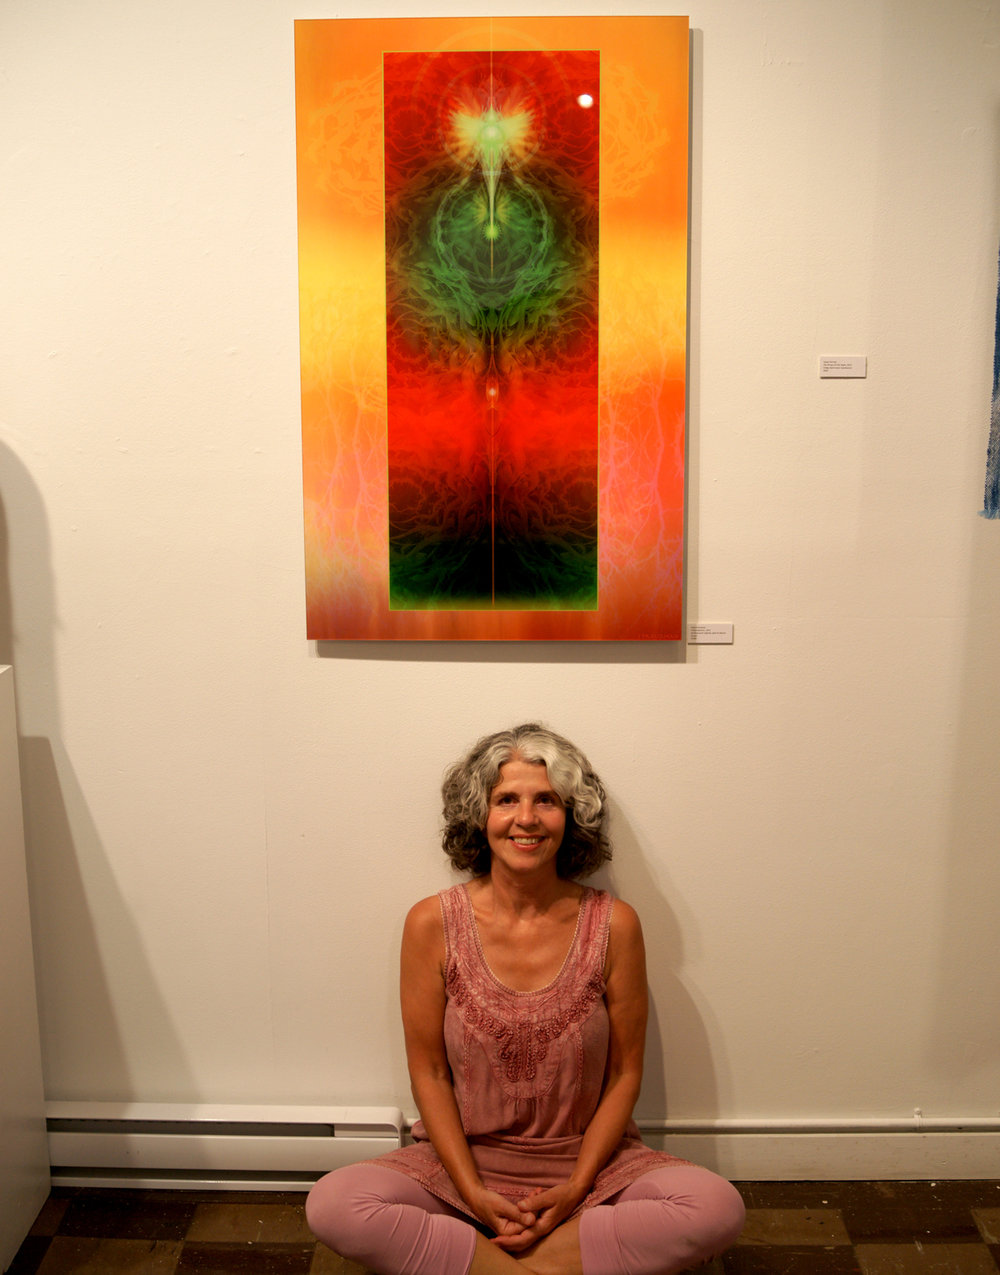 Joan Proudman - Joan Proudman creates montages with a Sony DSLR Digital camera and Photoshop software. A series entitled Light in My Soul which reflects seventeen years of healing and transformation is on display at evolve Sanctuary for the Soul Gallery in Belfast. Proudman's prints have exhibited in parts of New England, New York and Lecce, Italy. Publications include: Maine Art Scene Magazine, Escape Into Life Journal, FocusMaine.com, Shadow and Light Magazine, Osteopathic Biodynamic Methods and Shantic (published in Austria) as well as Maine books hear if you dare and Heart Songs and Other Legacies. She received Best in Show for her portfolio from Stillpoint Arts Magazine in the Fall of 2016. Joan is also a dancer with a professional background in ballet and modern dance. Please visit her website at http://www.joanproudman.com